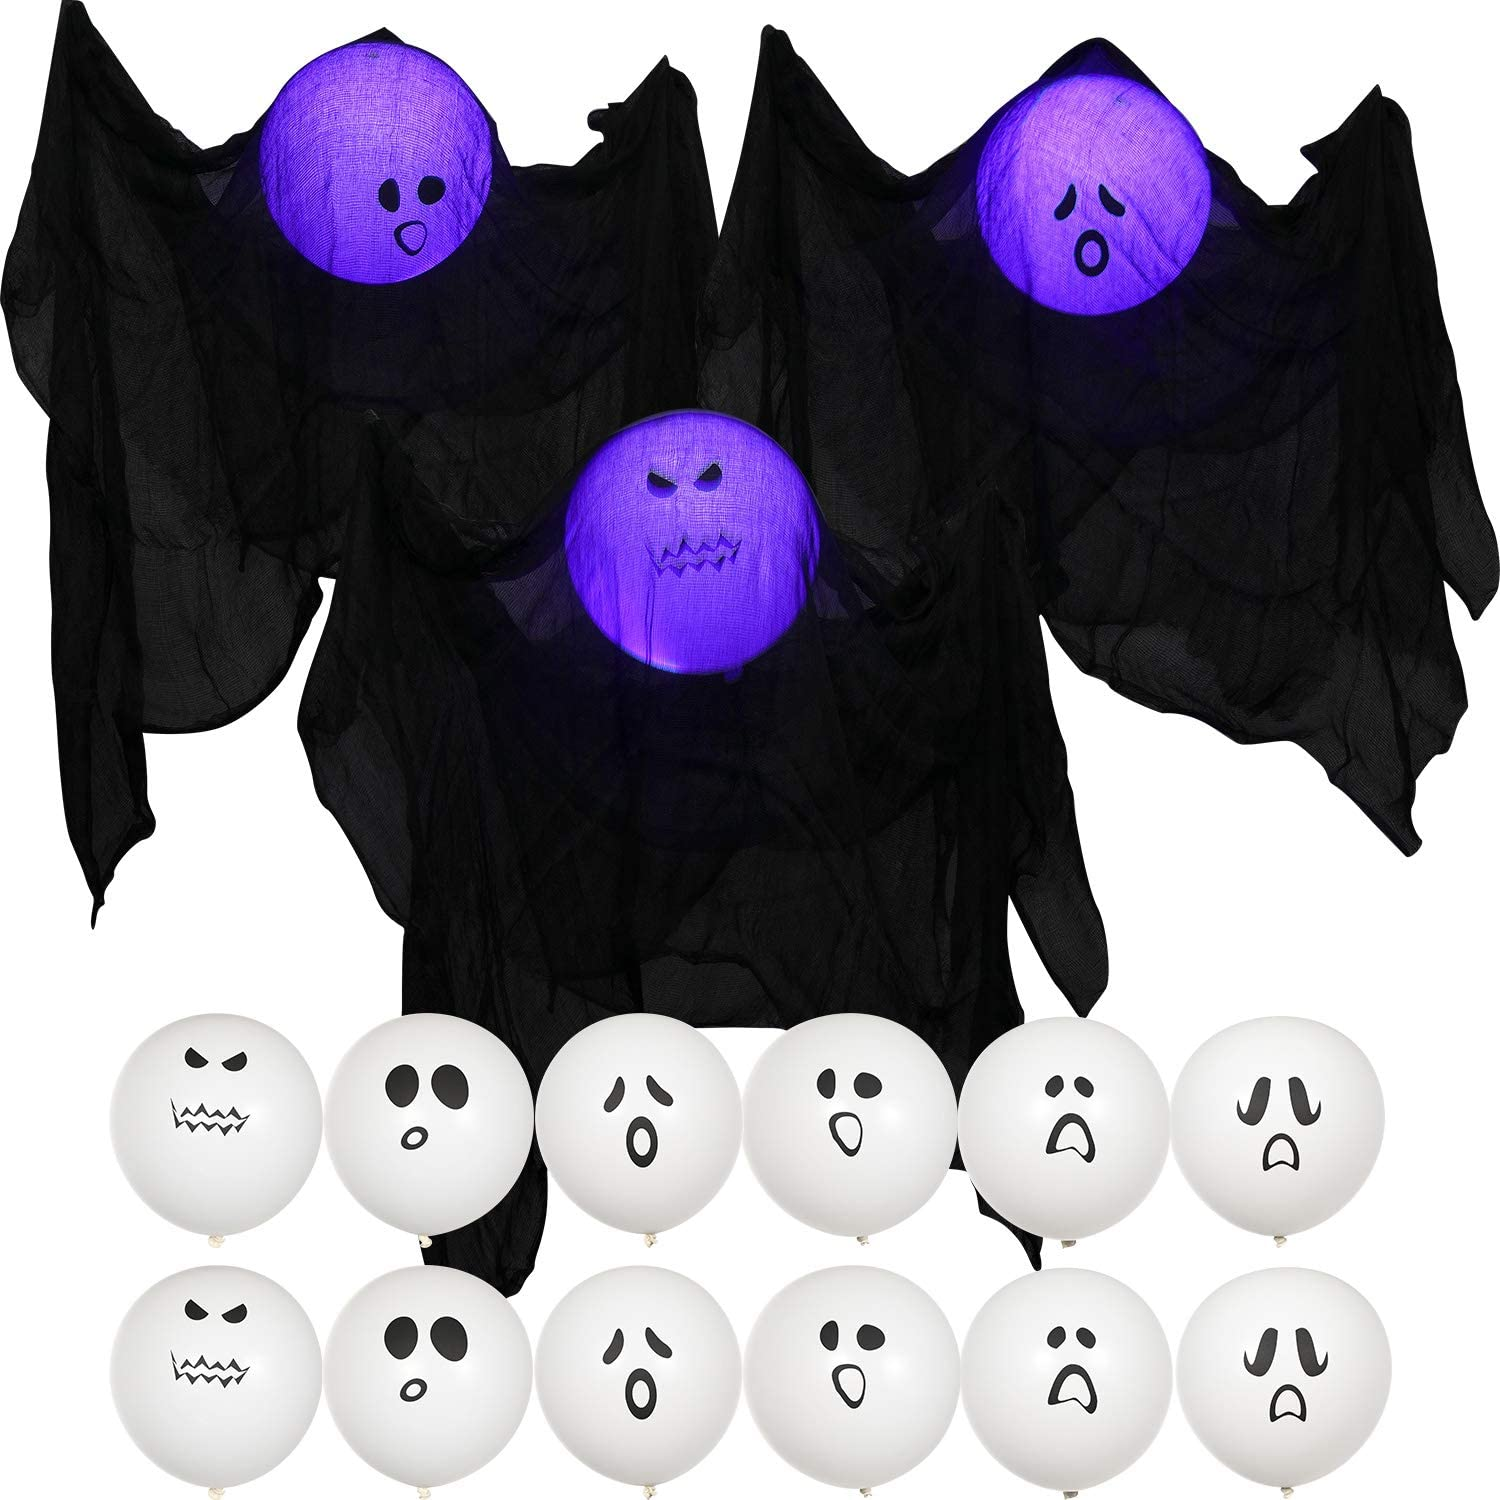 25 Pieces Halloween Hanging Light up Ghost Party Decoration, 12 Pieces Ghost Balloons, 12 Pieces Blue LED Balloon Light and 1 Piece Black Gauze Yarn for Halloween Outdoor Garden Decoration Supplies